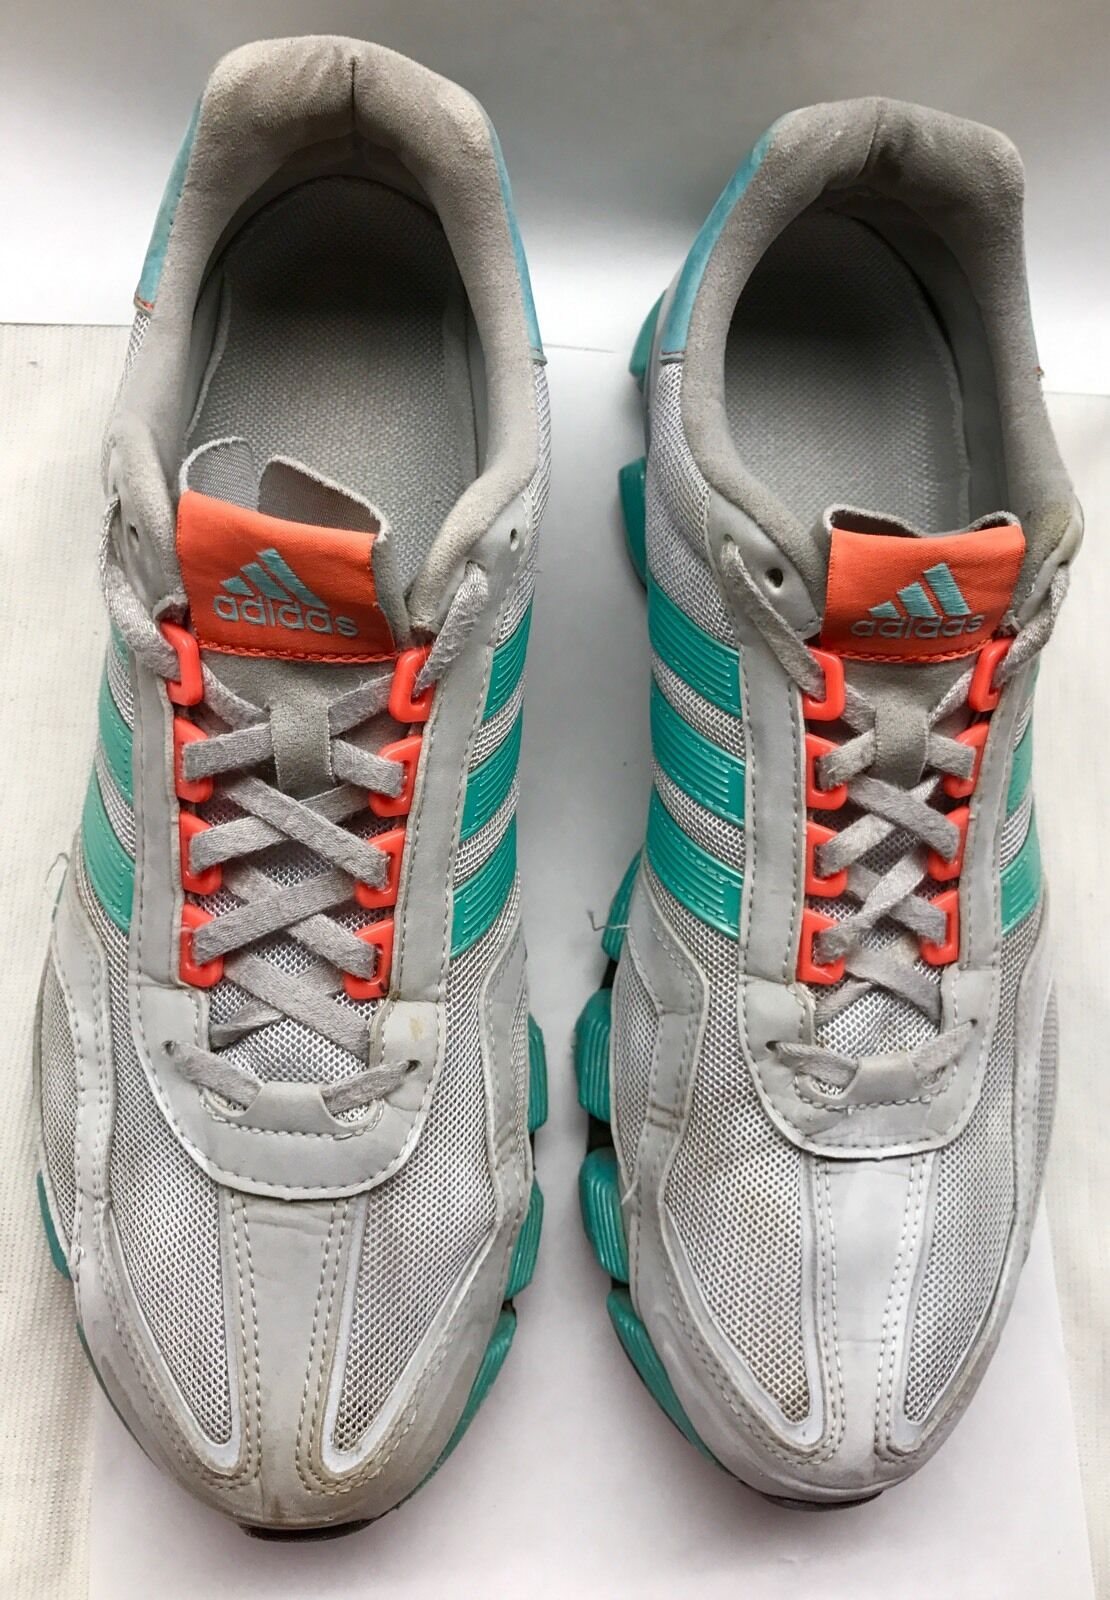 Adidas F2011 Men's Running Shoes Casual wild